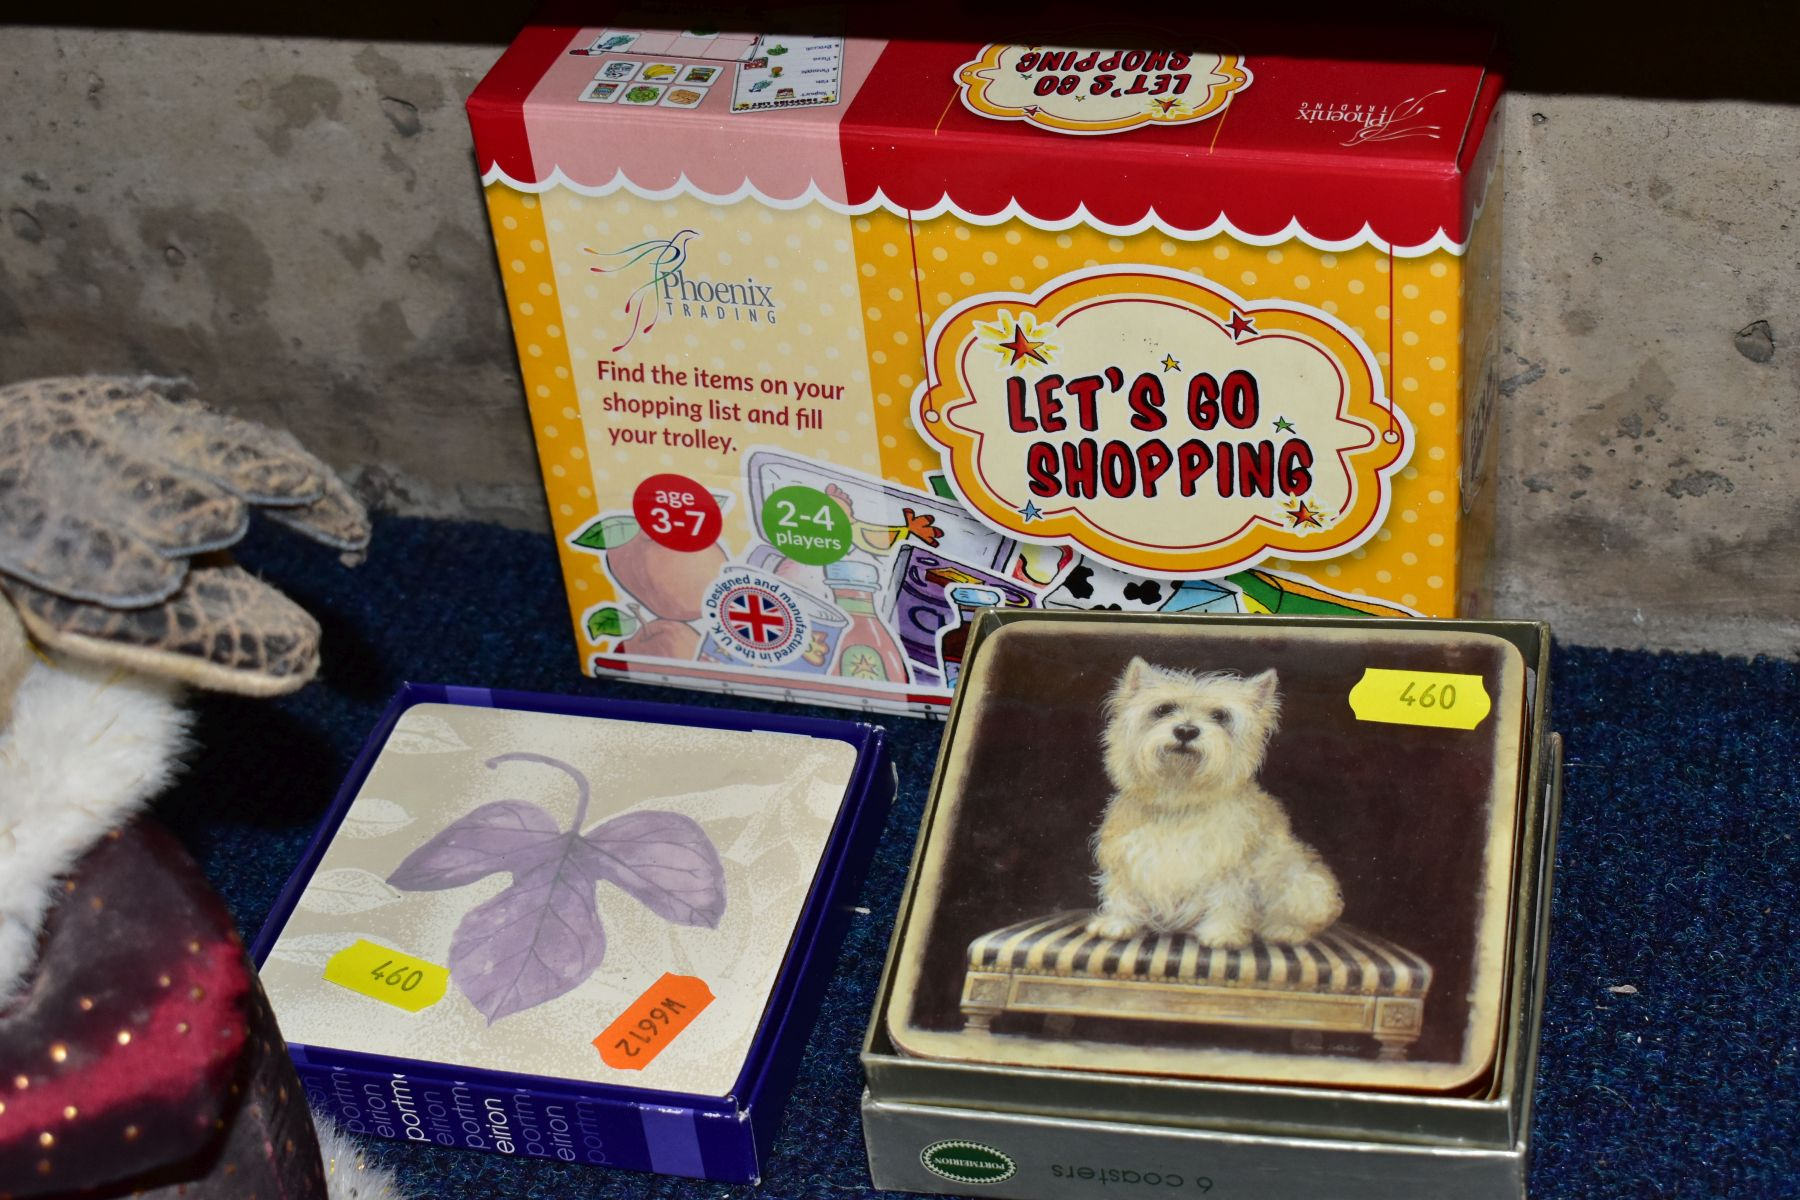 FOUR BOXES AND LOOSE METALWARE, HOUSEHOLD SUNDRIES, OIL LAMP, etc, to include board games, book - Image 10 of 16